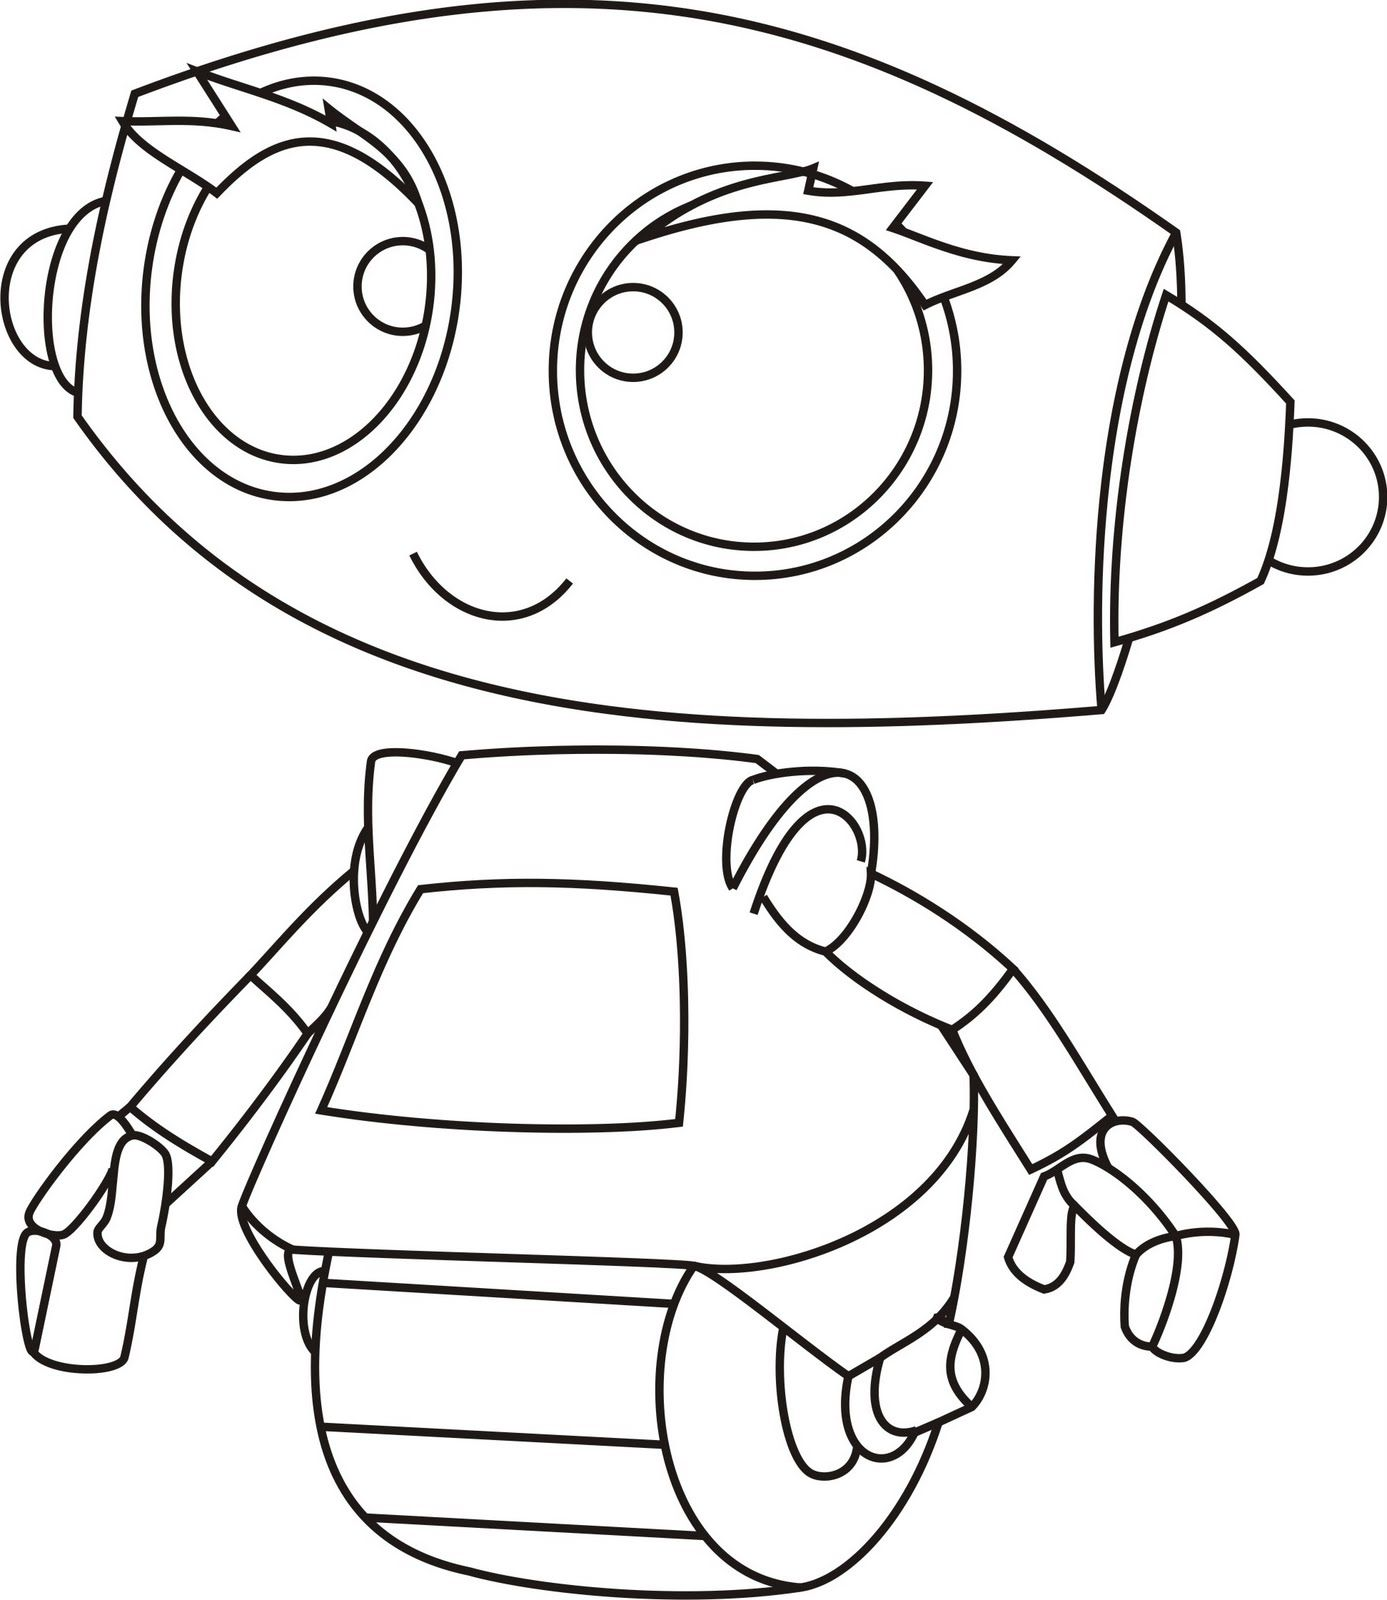 simple robot coloring page for kids robot colouring pages